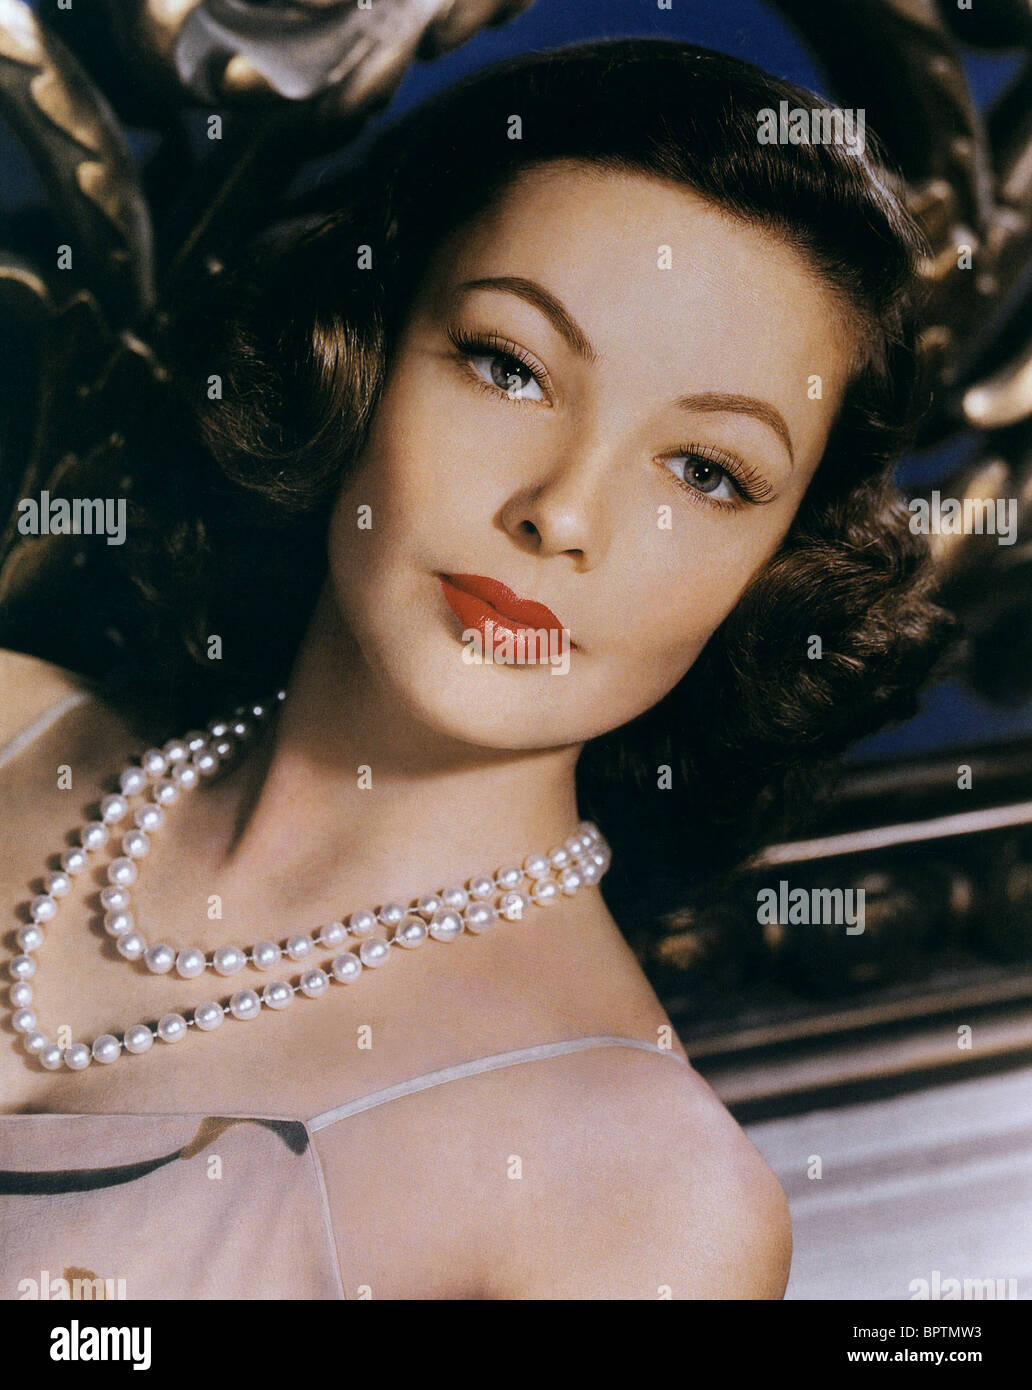 GENE TIERNEY ACTRESS (1944) - Stock Image